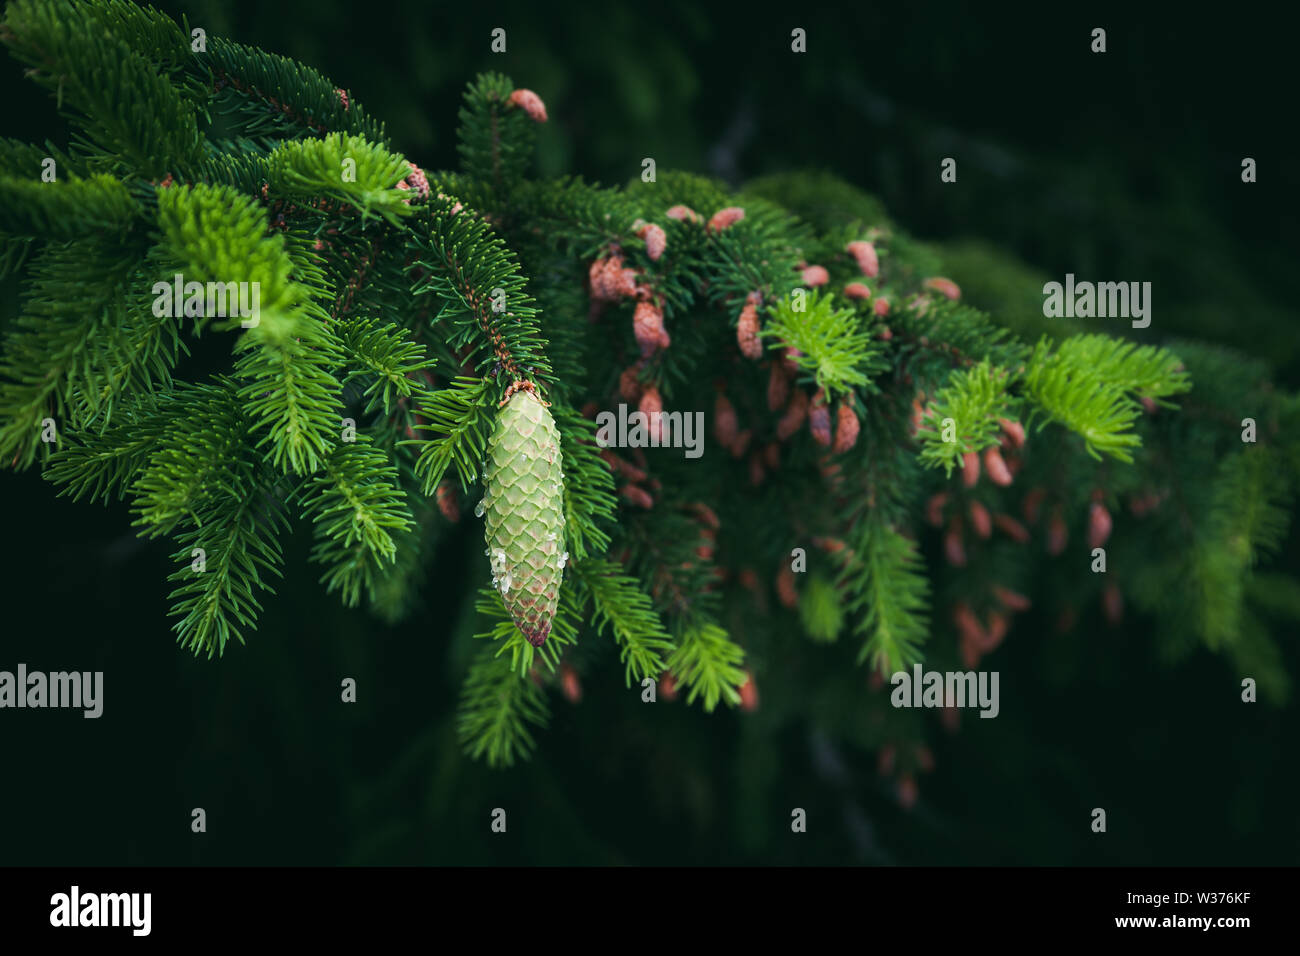 Green spruce branch with needles and cone covered resin drops - Stock Image